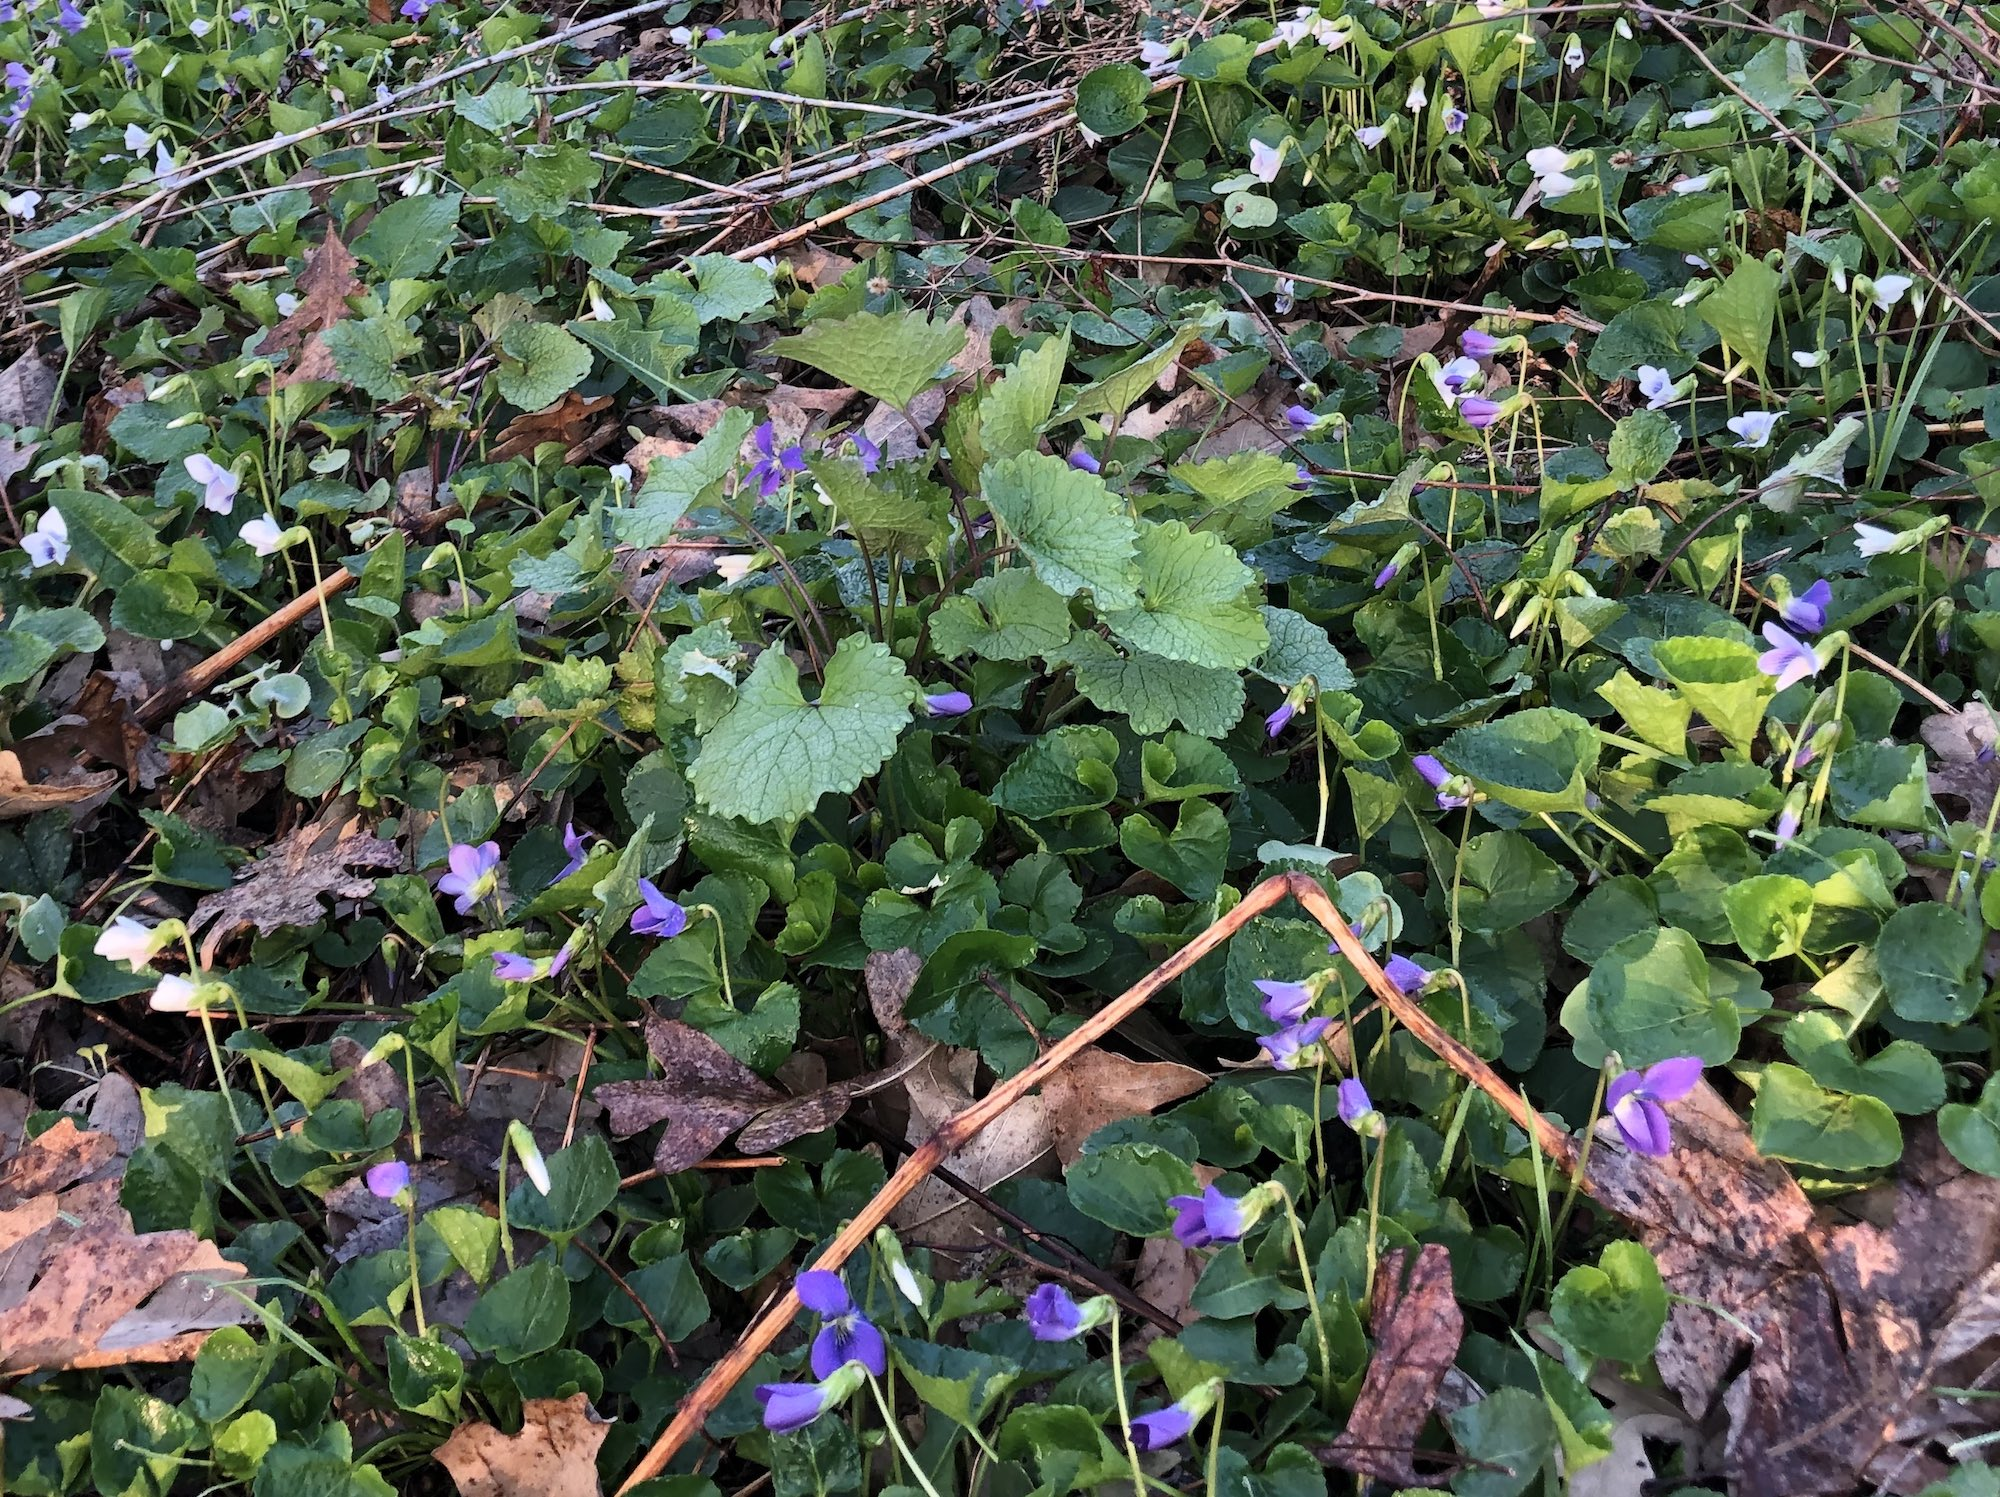 Wood Violets near Council Ring, the Oak Savanna and the Duck Pond on April 24, 2019.